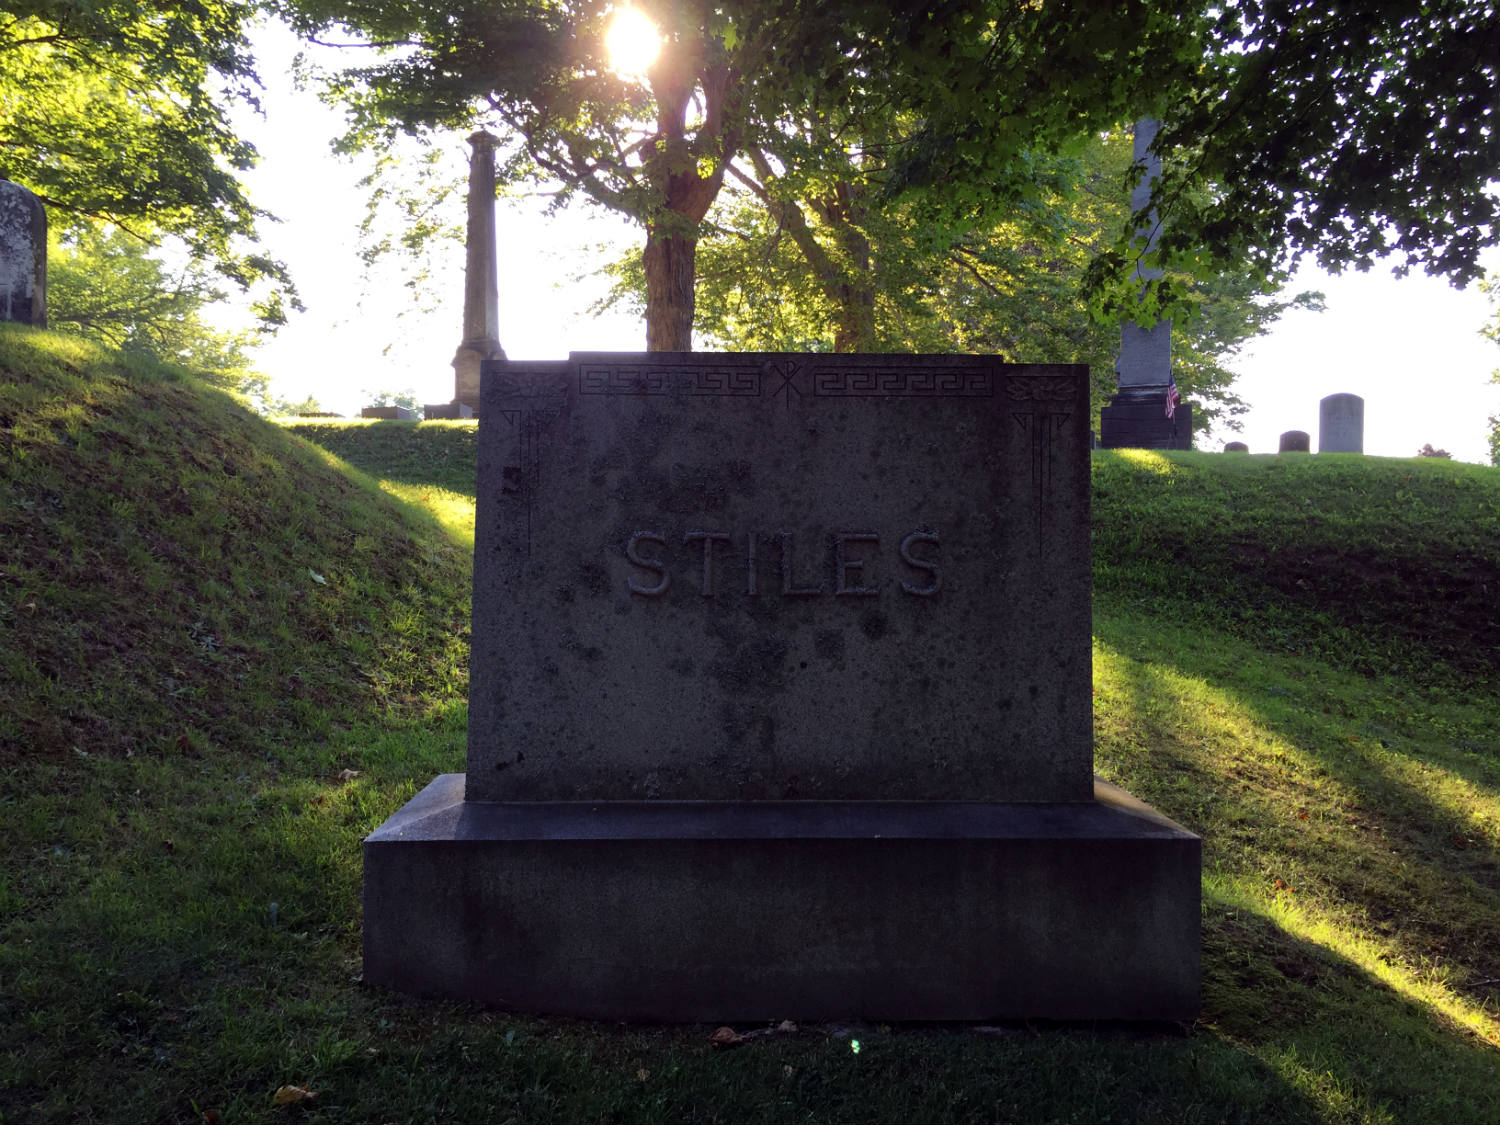 Stiles Marker in Mt. Albion Cemetery in Orleans County